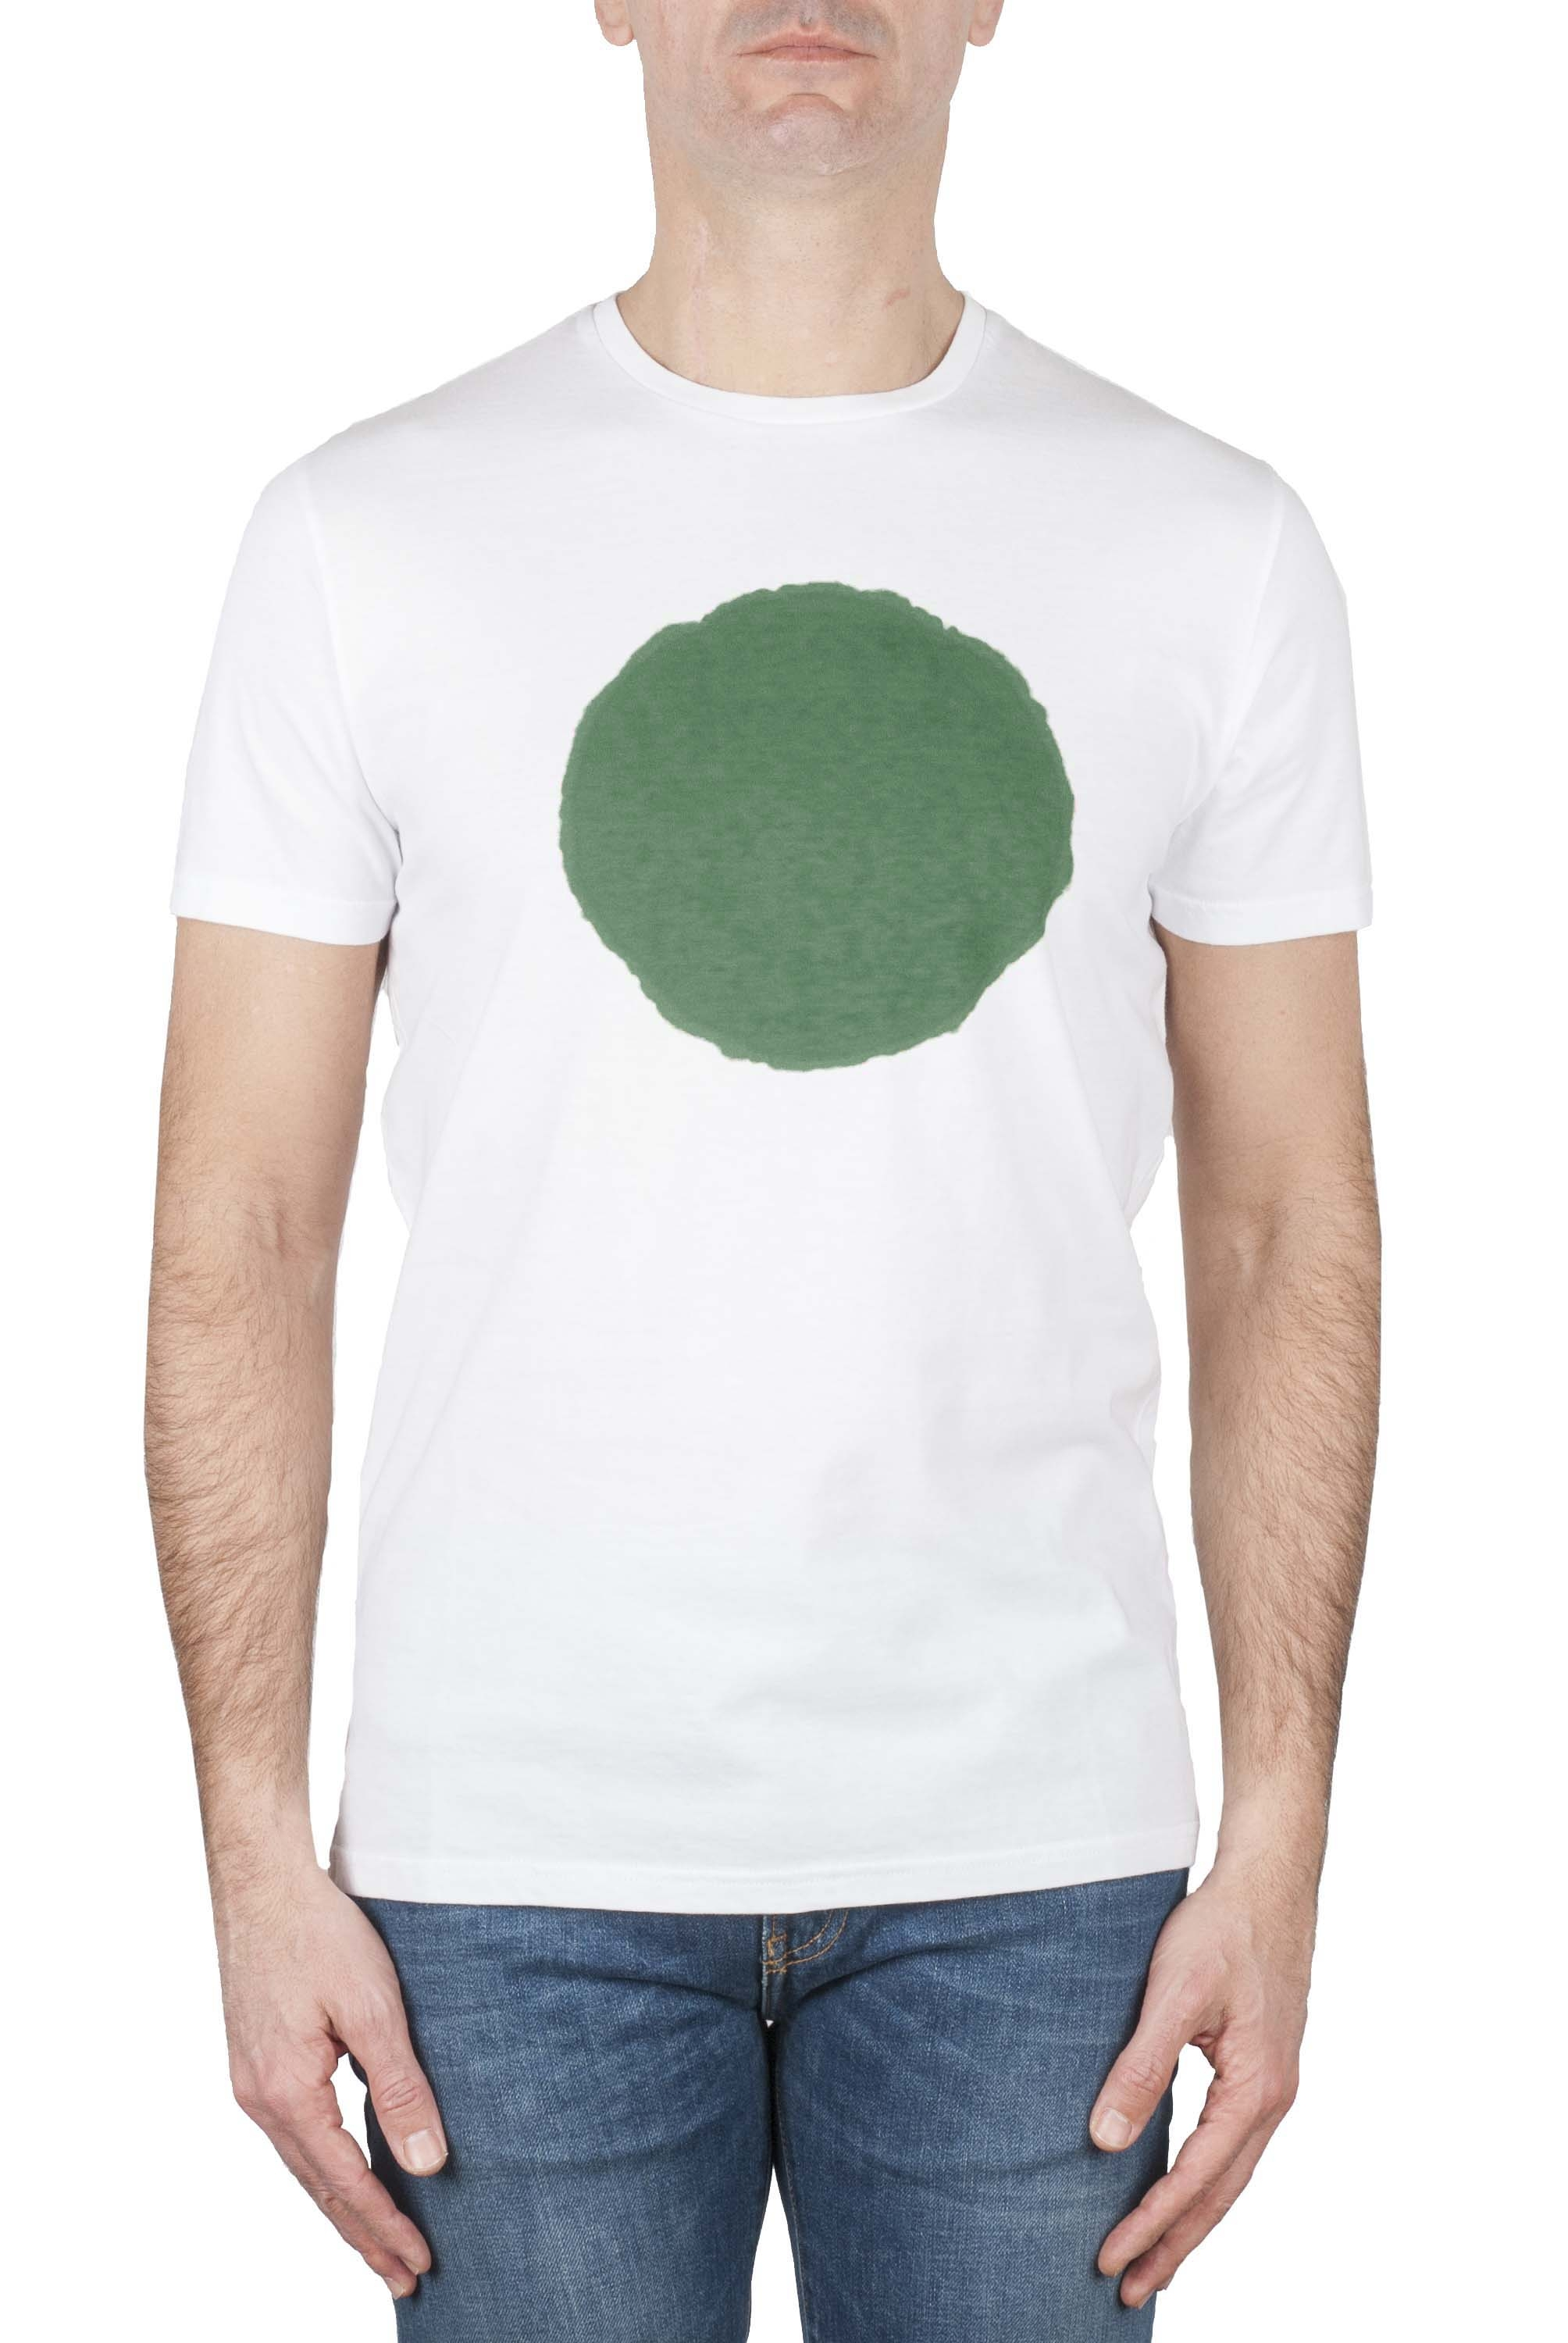 SBU 01920_19AW Classic short sleeve cotton round neck t-shirt green and white printed graphic 01